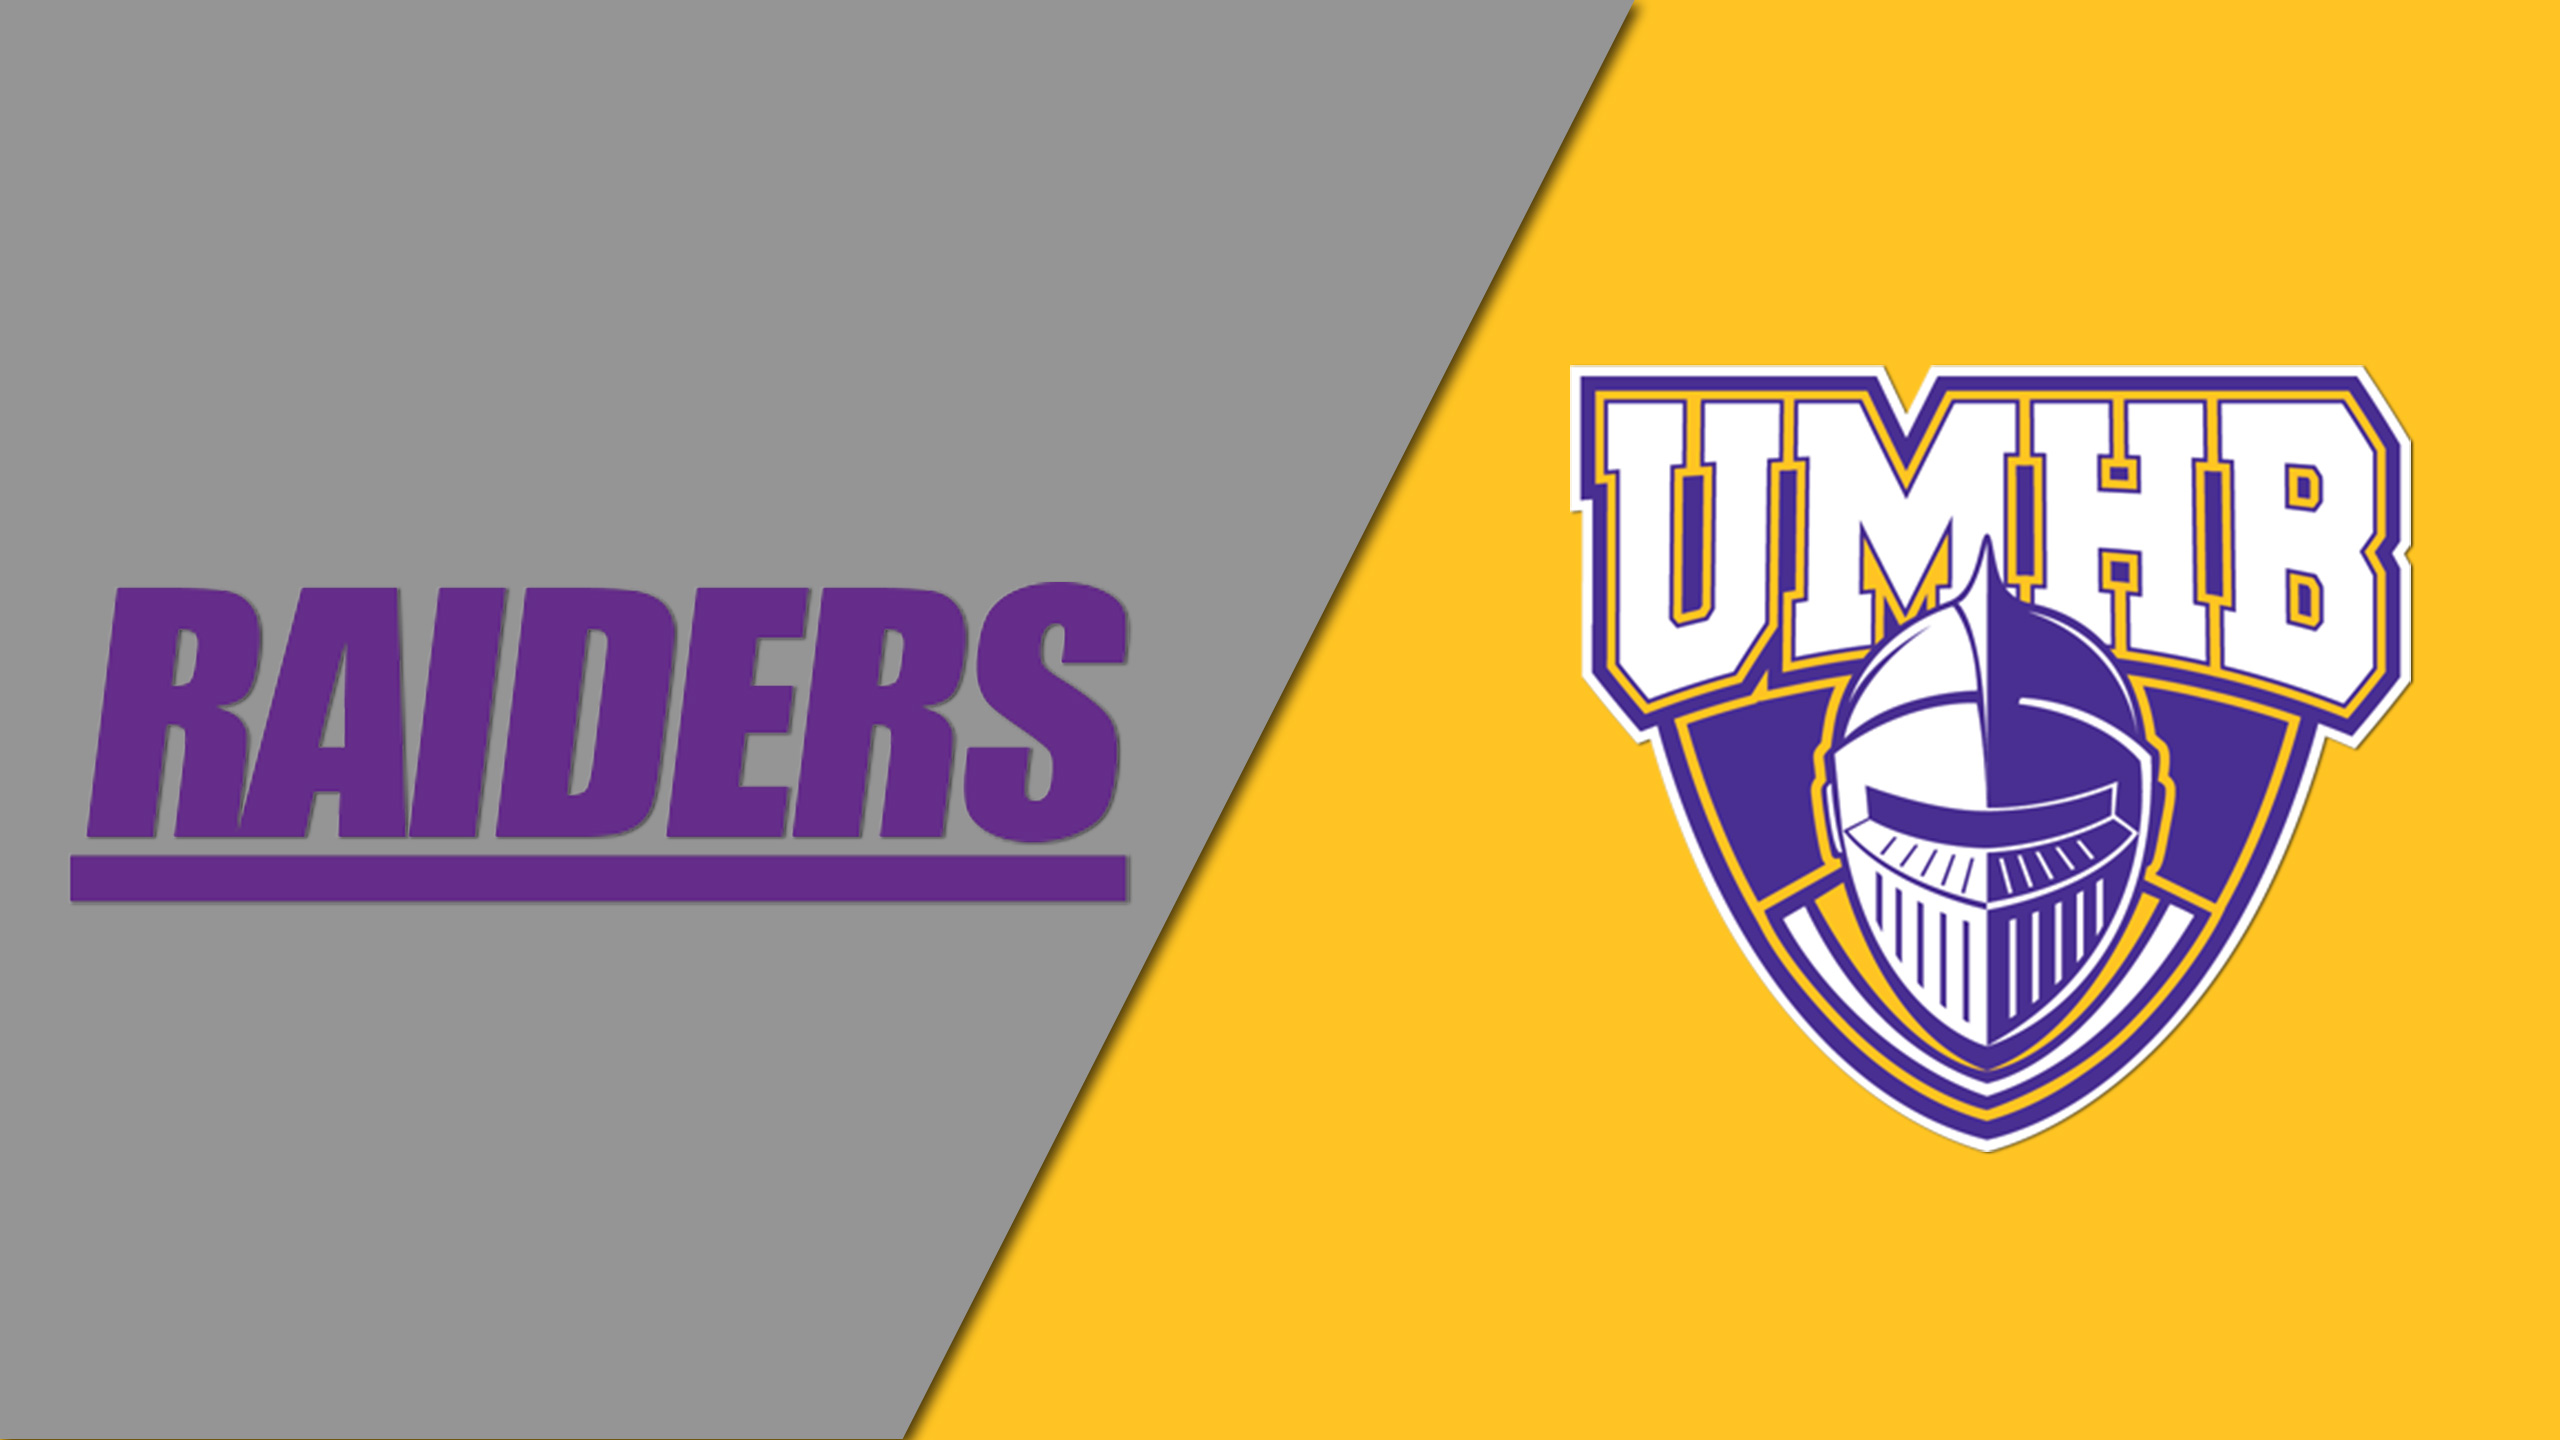 Mount Union (OH) vs. Mary Hardin-Baylor (TX) (Championship) (NCAA Division III Football Championship)